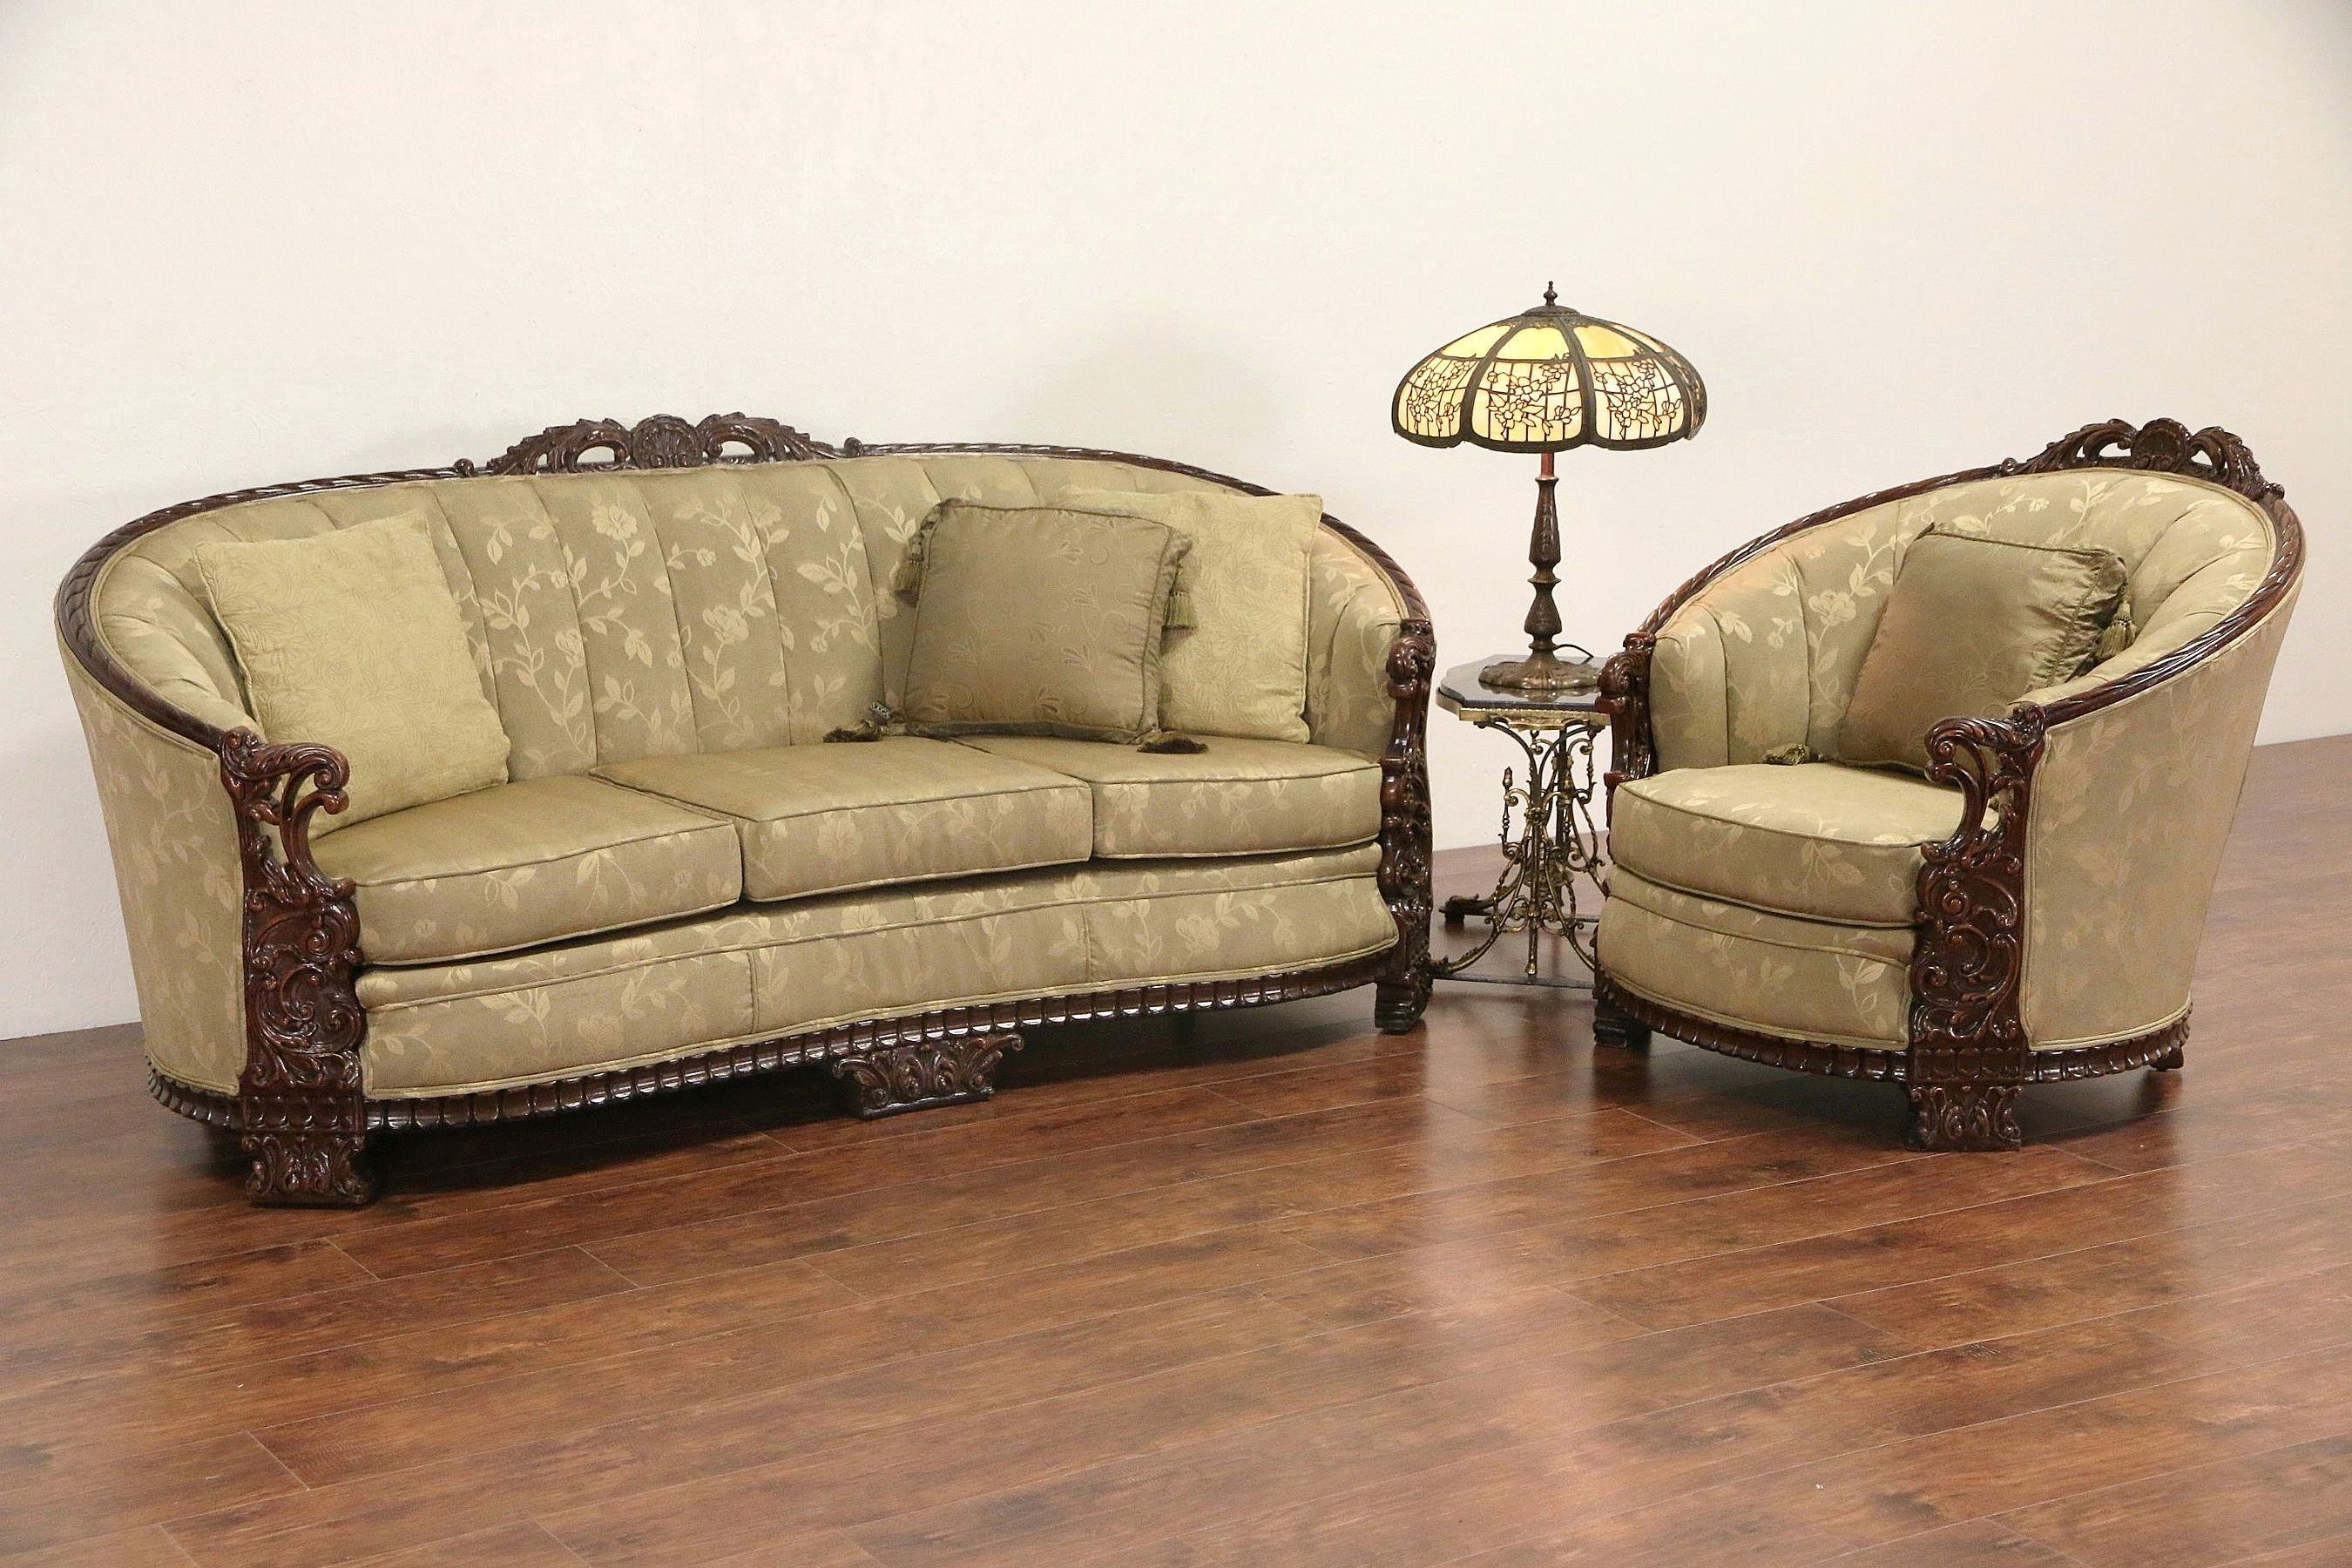 Carved Sofa Club Chair Set 1930 S Vintage Recent Upholstery Carved Sofa Furniture Creative Furniture